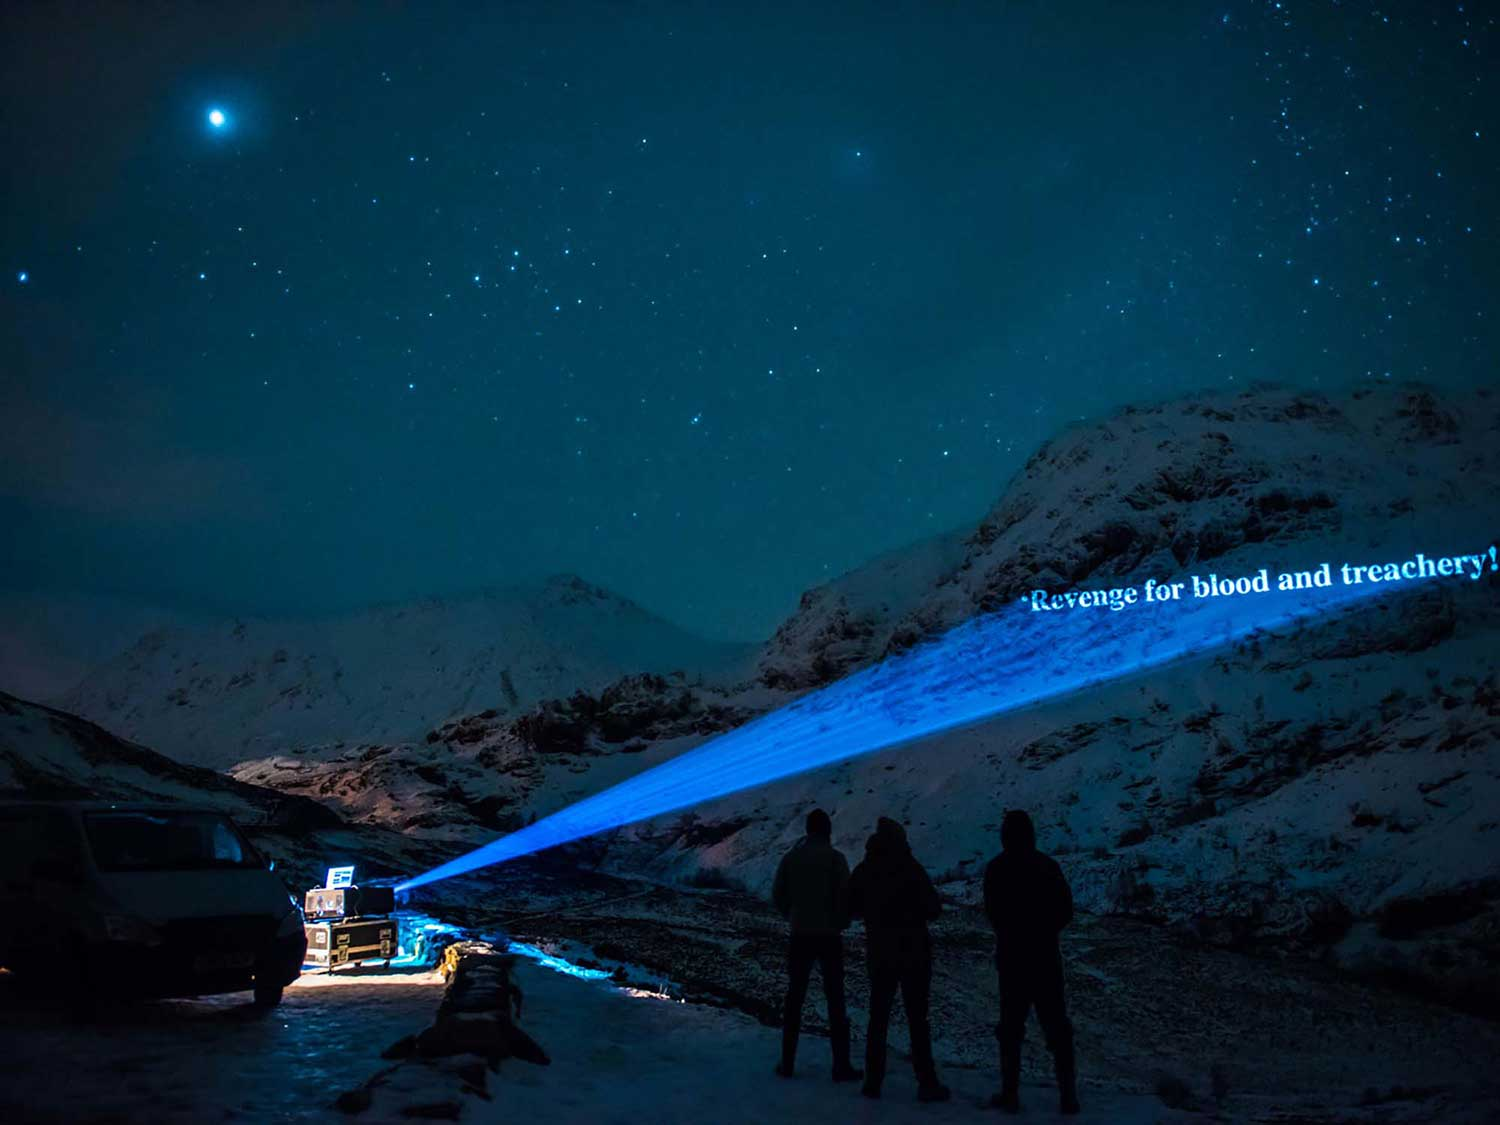 On The Massacre of Glencoe, Guerrilla Projections timelapse film, mountain